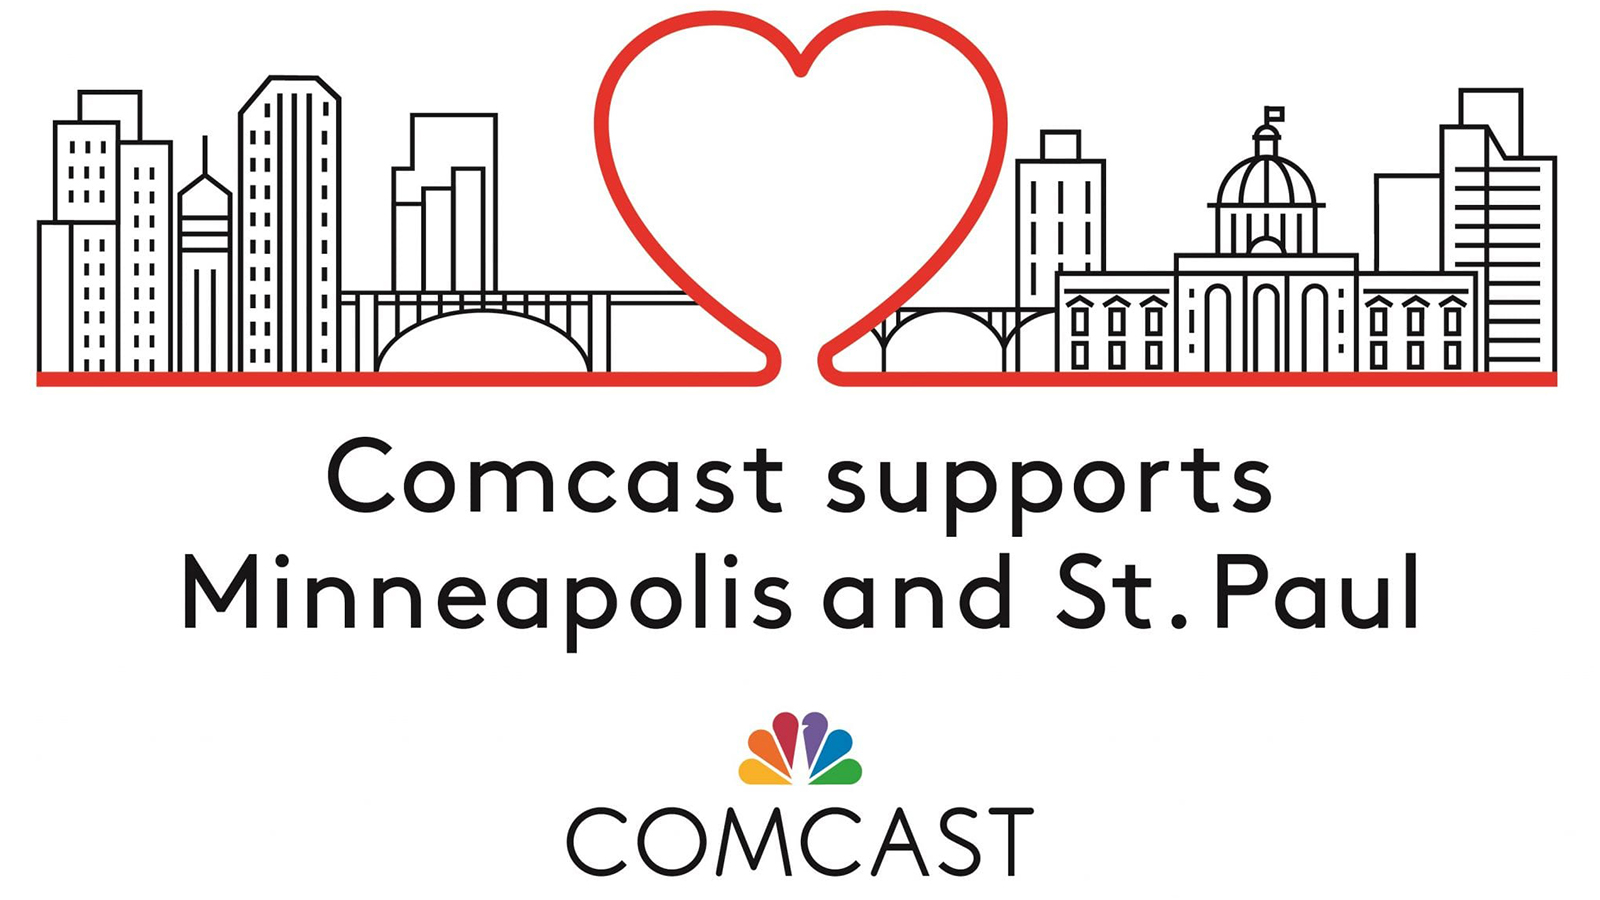 Comcast supports Minneapolis and St. Paul.